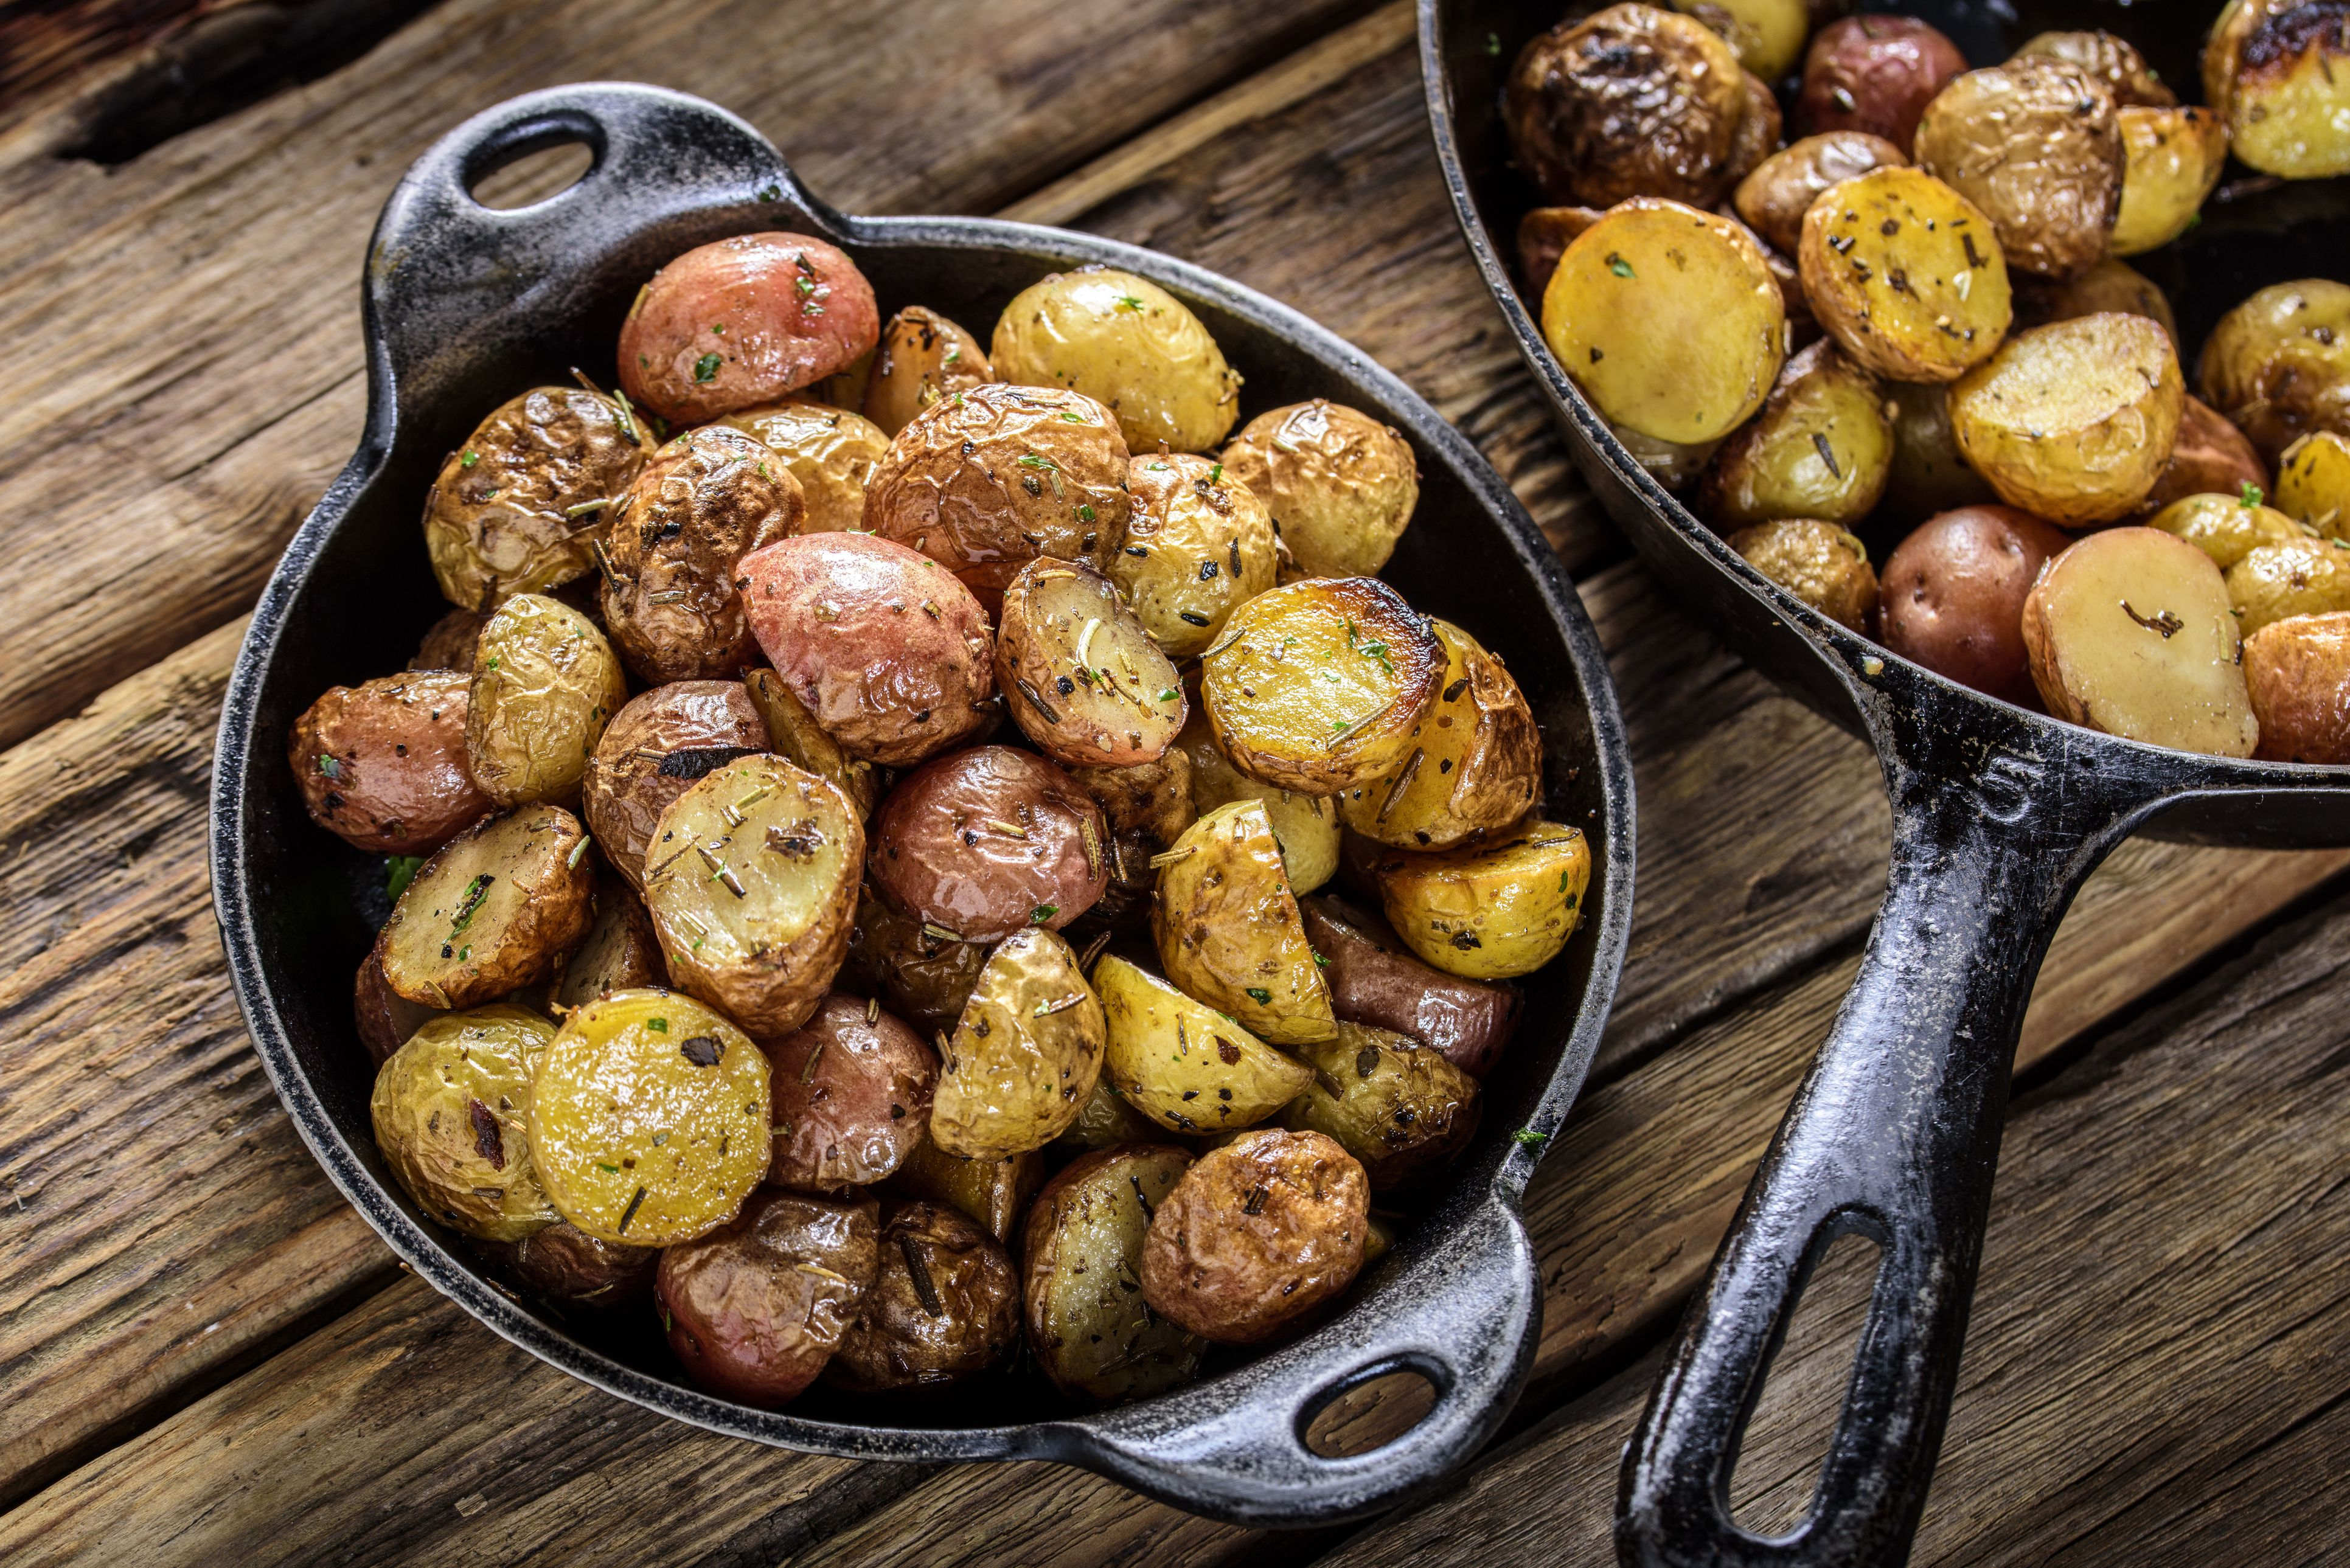 Are White Potatoes Considered Part of a Healthy Diet?